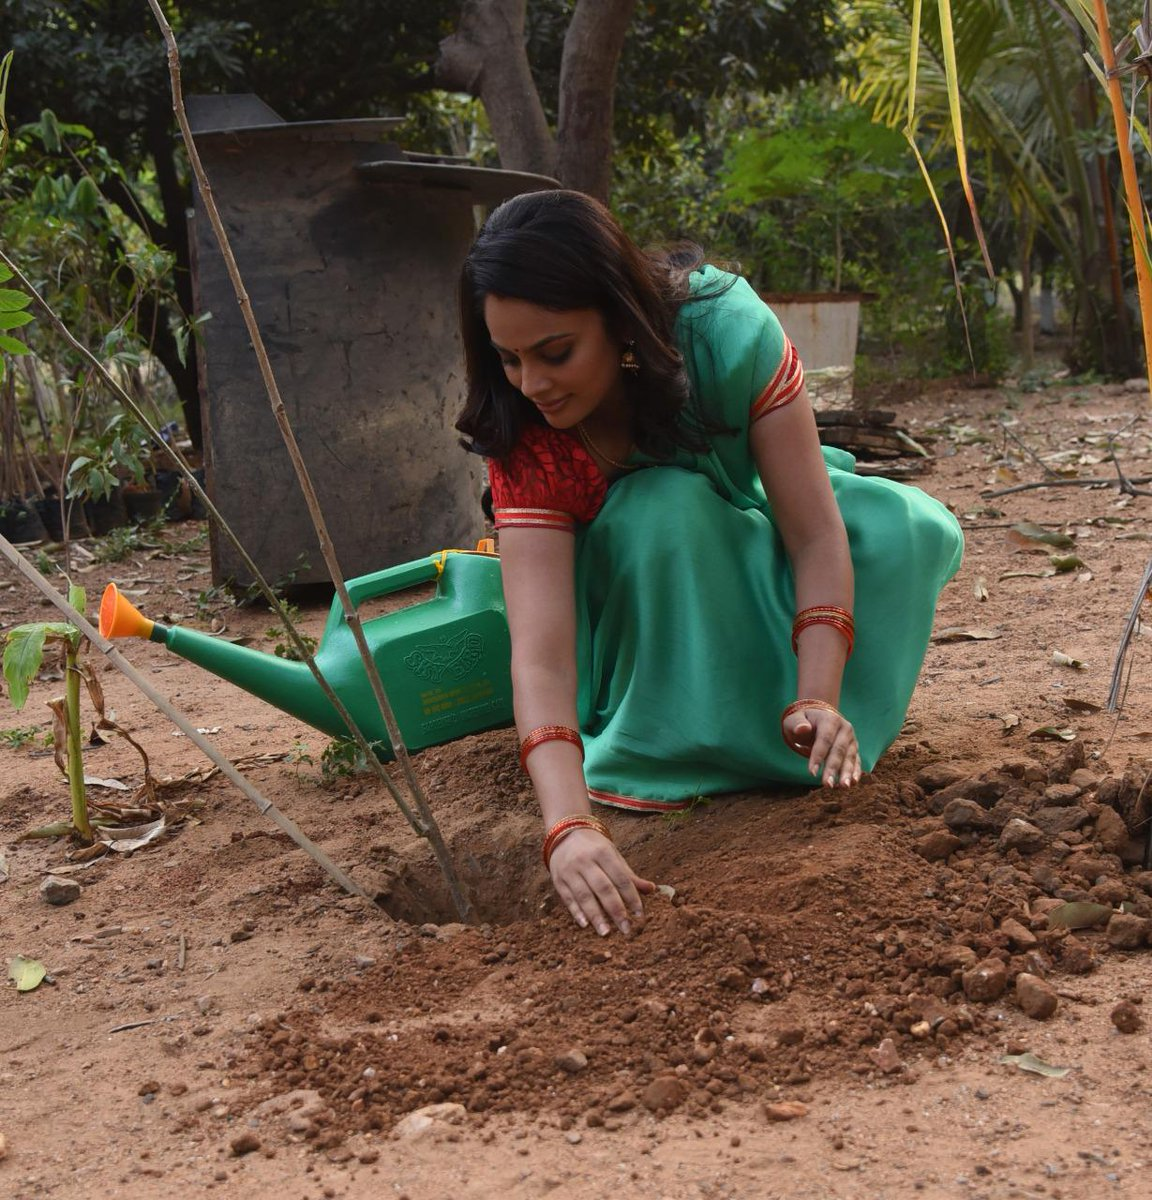 Beautiful @Nanditasweta accepted #HaraHaiTohBharaHai #GreenindiaChallenge  Inspiration from @MPsantoshtrs Planted 3 saplings. Further She nominated @actor_Nikhil @aishu_dil